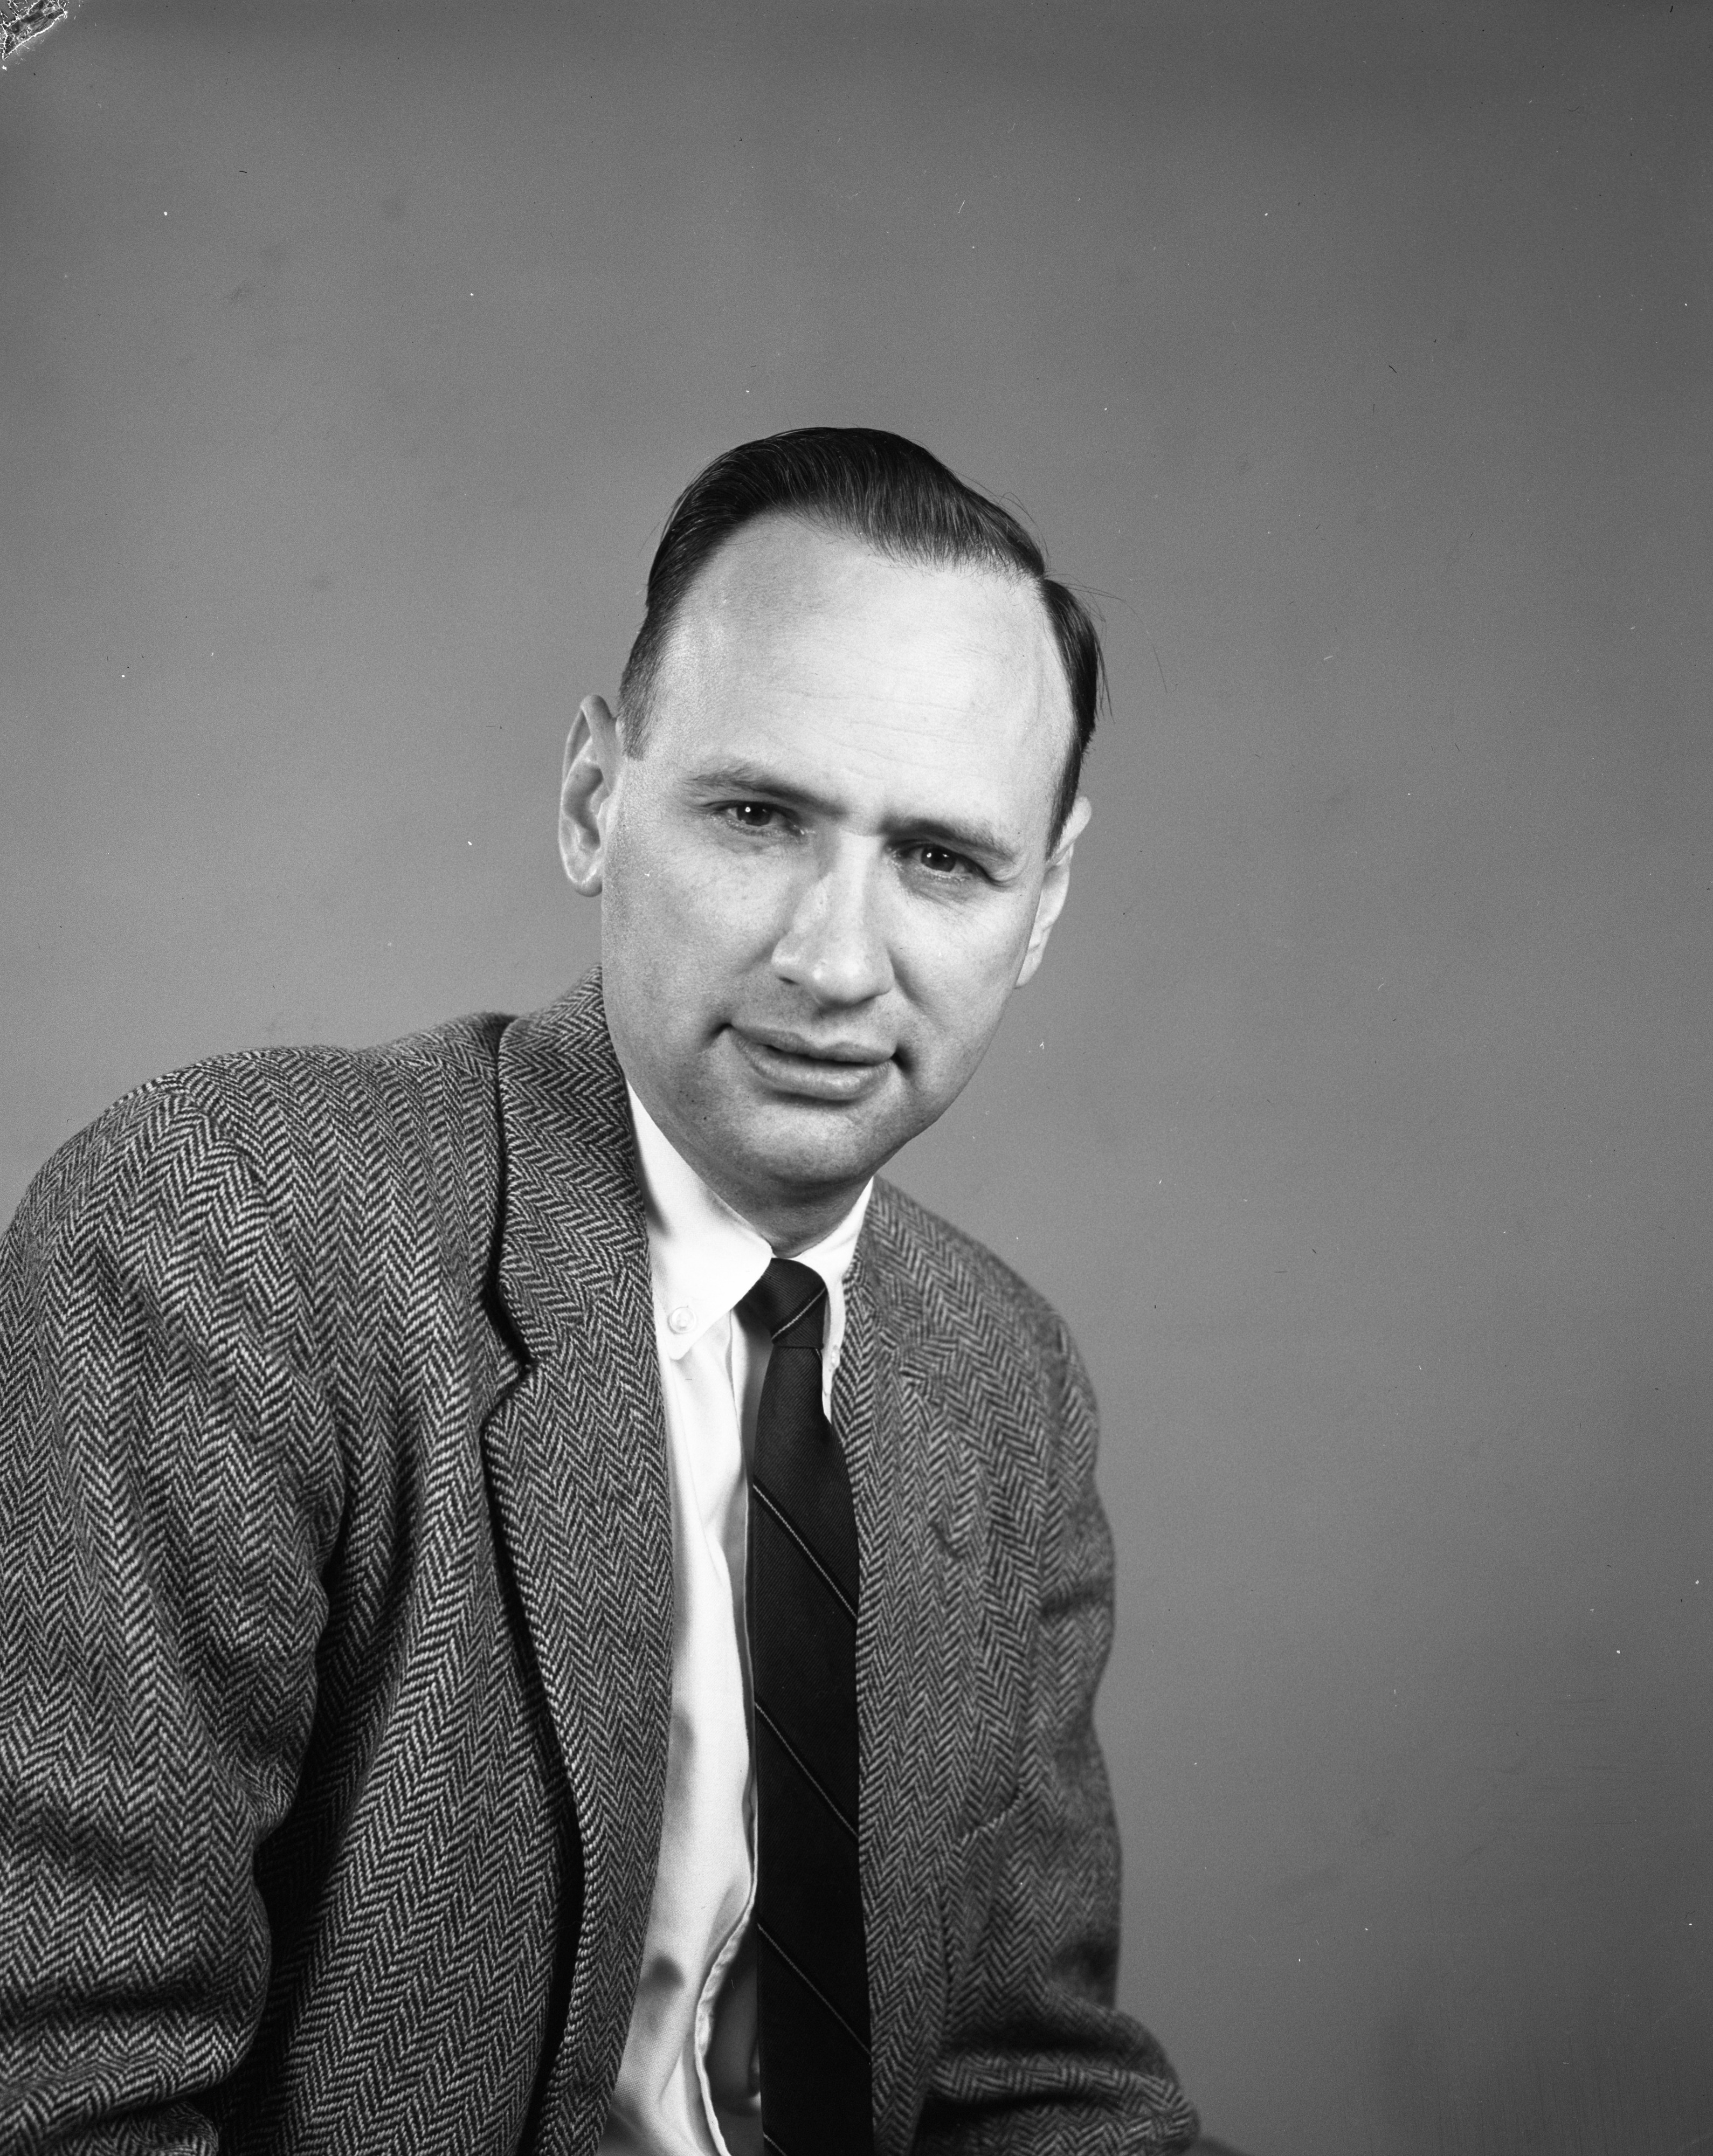 Ted Heusel, December 1958 image